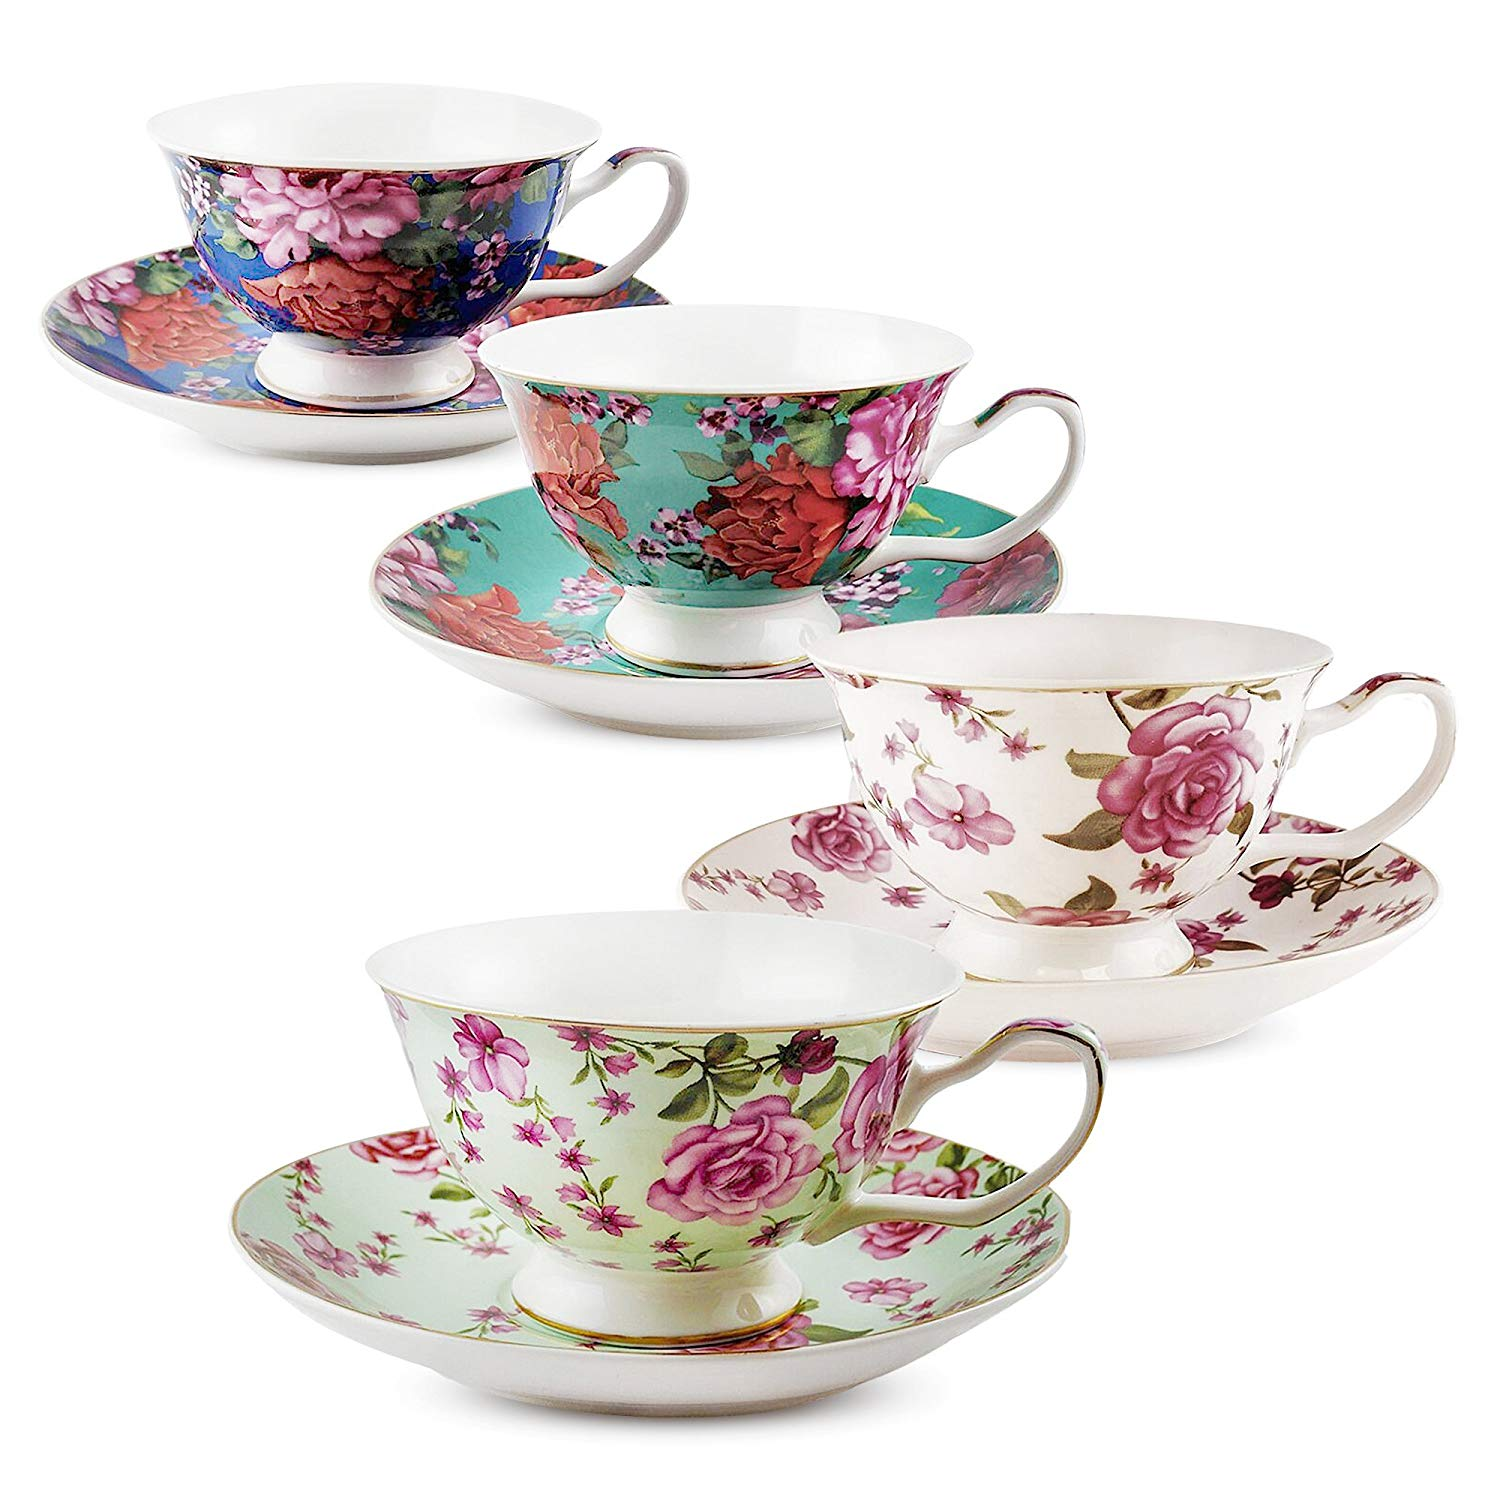 BTäT- Tea Cups, Tea Cups and Saucers Set of 4, Tea Set, Floral Tea Cups (7oz), Cappuccino Cups, Latte Cups, Tea Set for Adults, Porcelain Tea Cups, Tea Cups for Tea Party, Rose Teacups, China Tea Cups